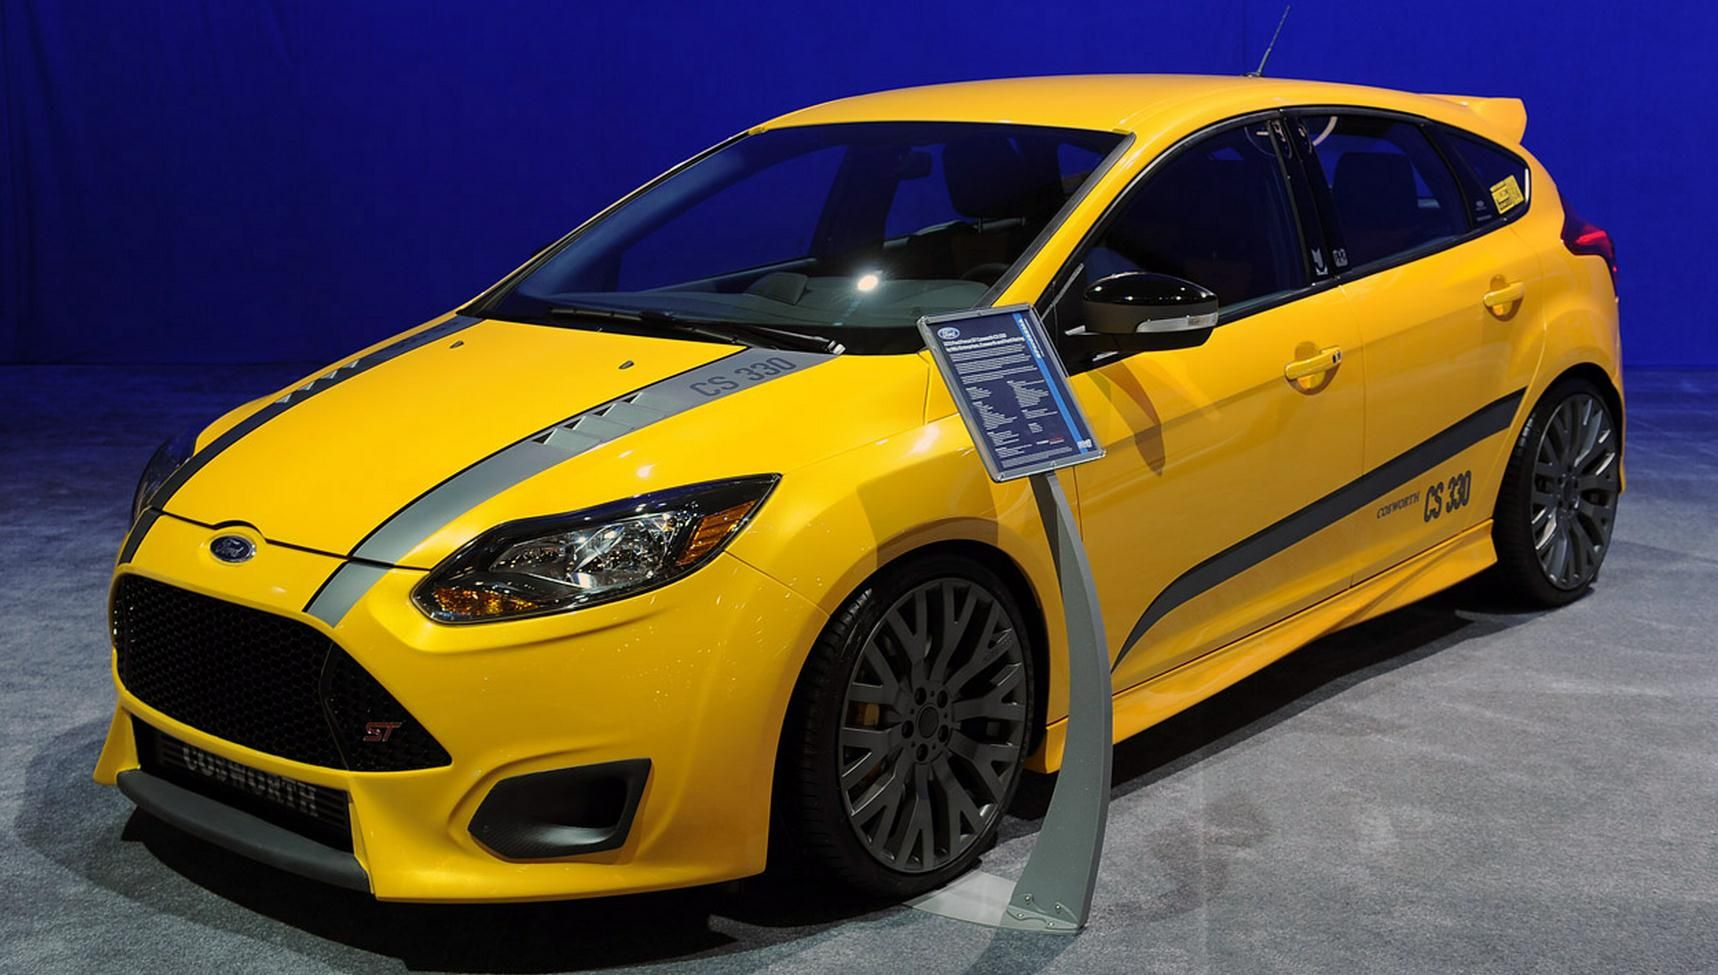 The Theme Based Customization On 2013 Ford Focus St With 2 0 Litre